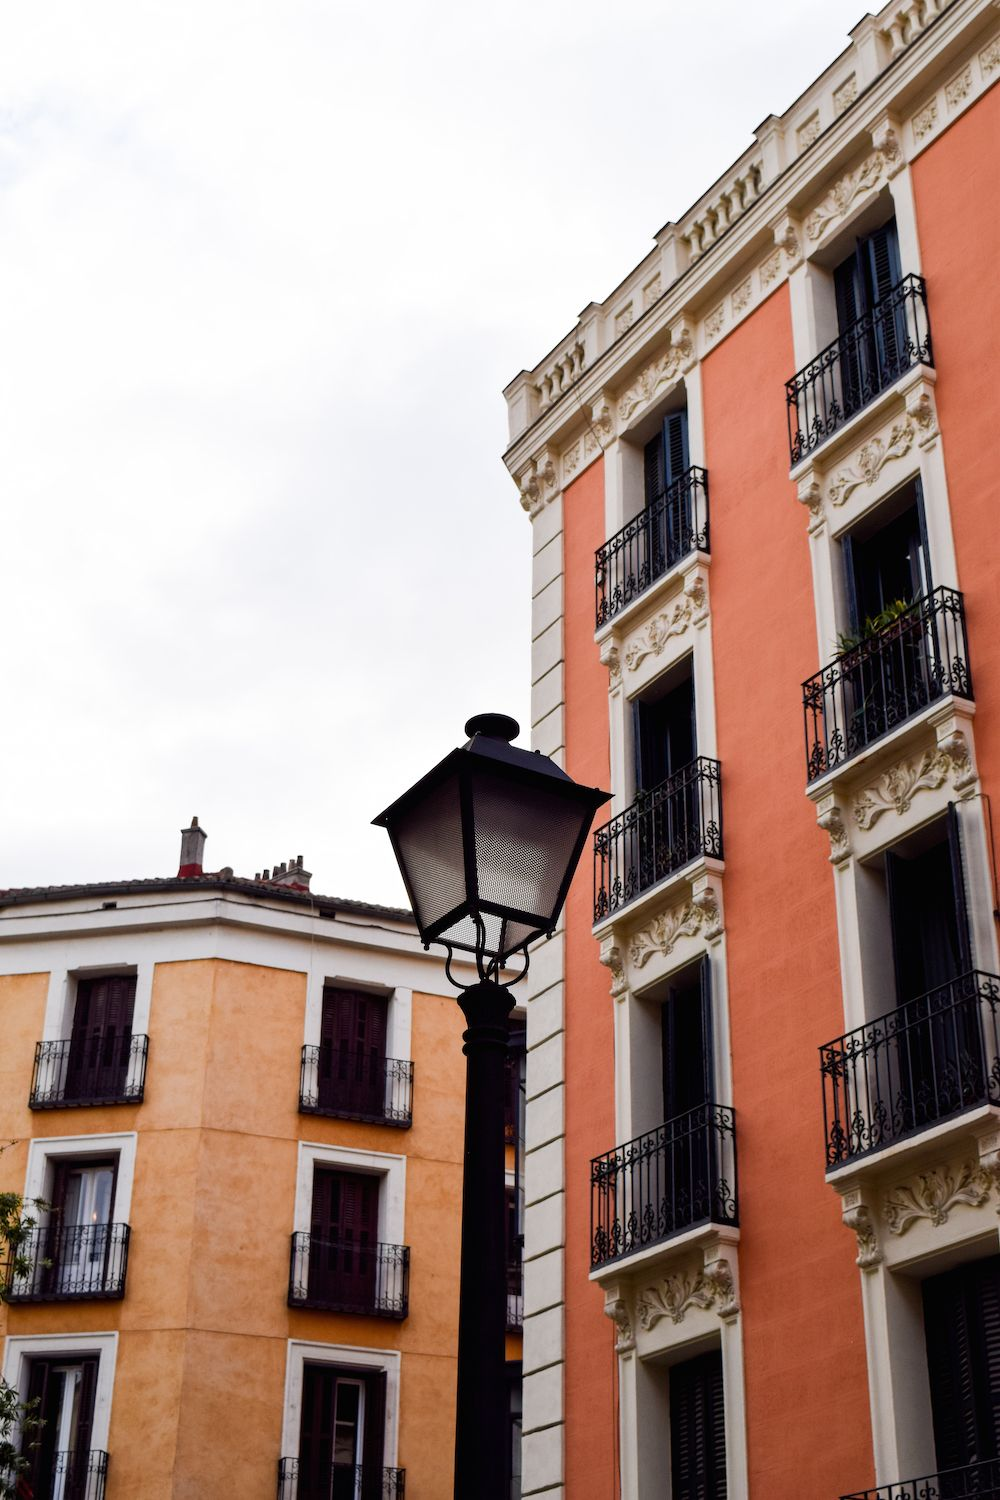 Orange and coral buildings in Malasaña, Madrid